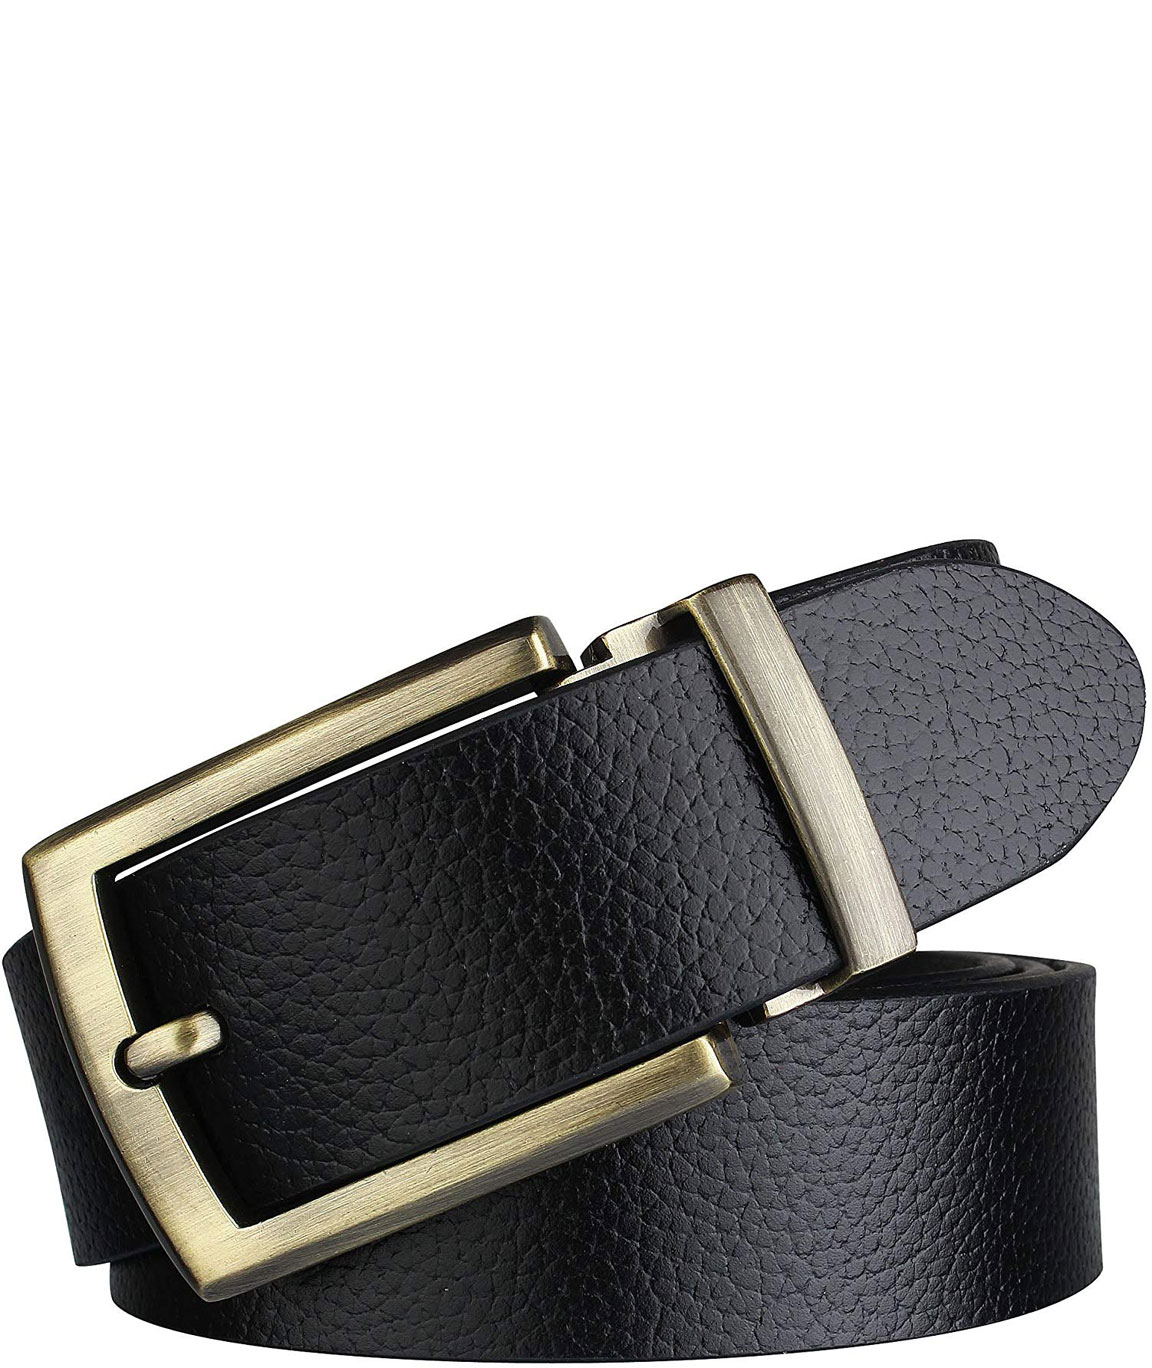 Alfami formal/casual black genuine leather belts for mens- 1 year guarantee Gift for gents BKLC-05